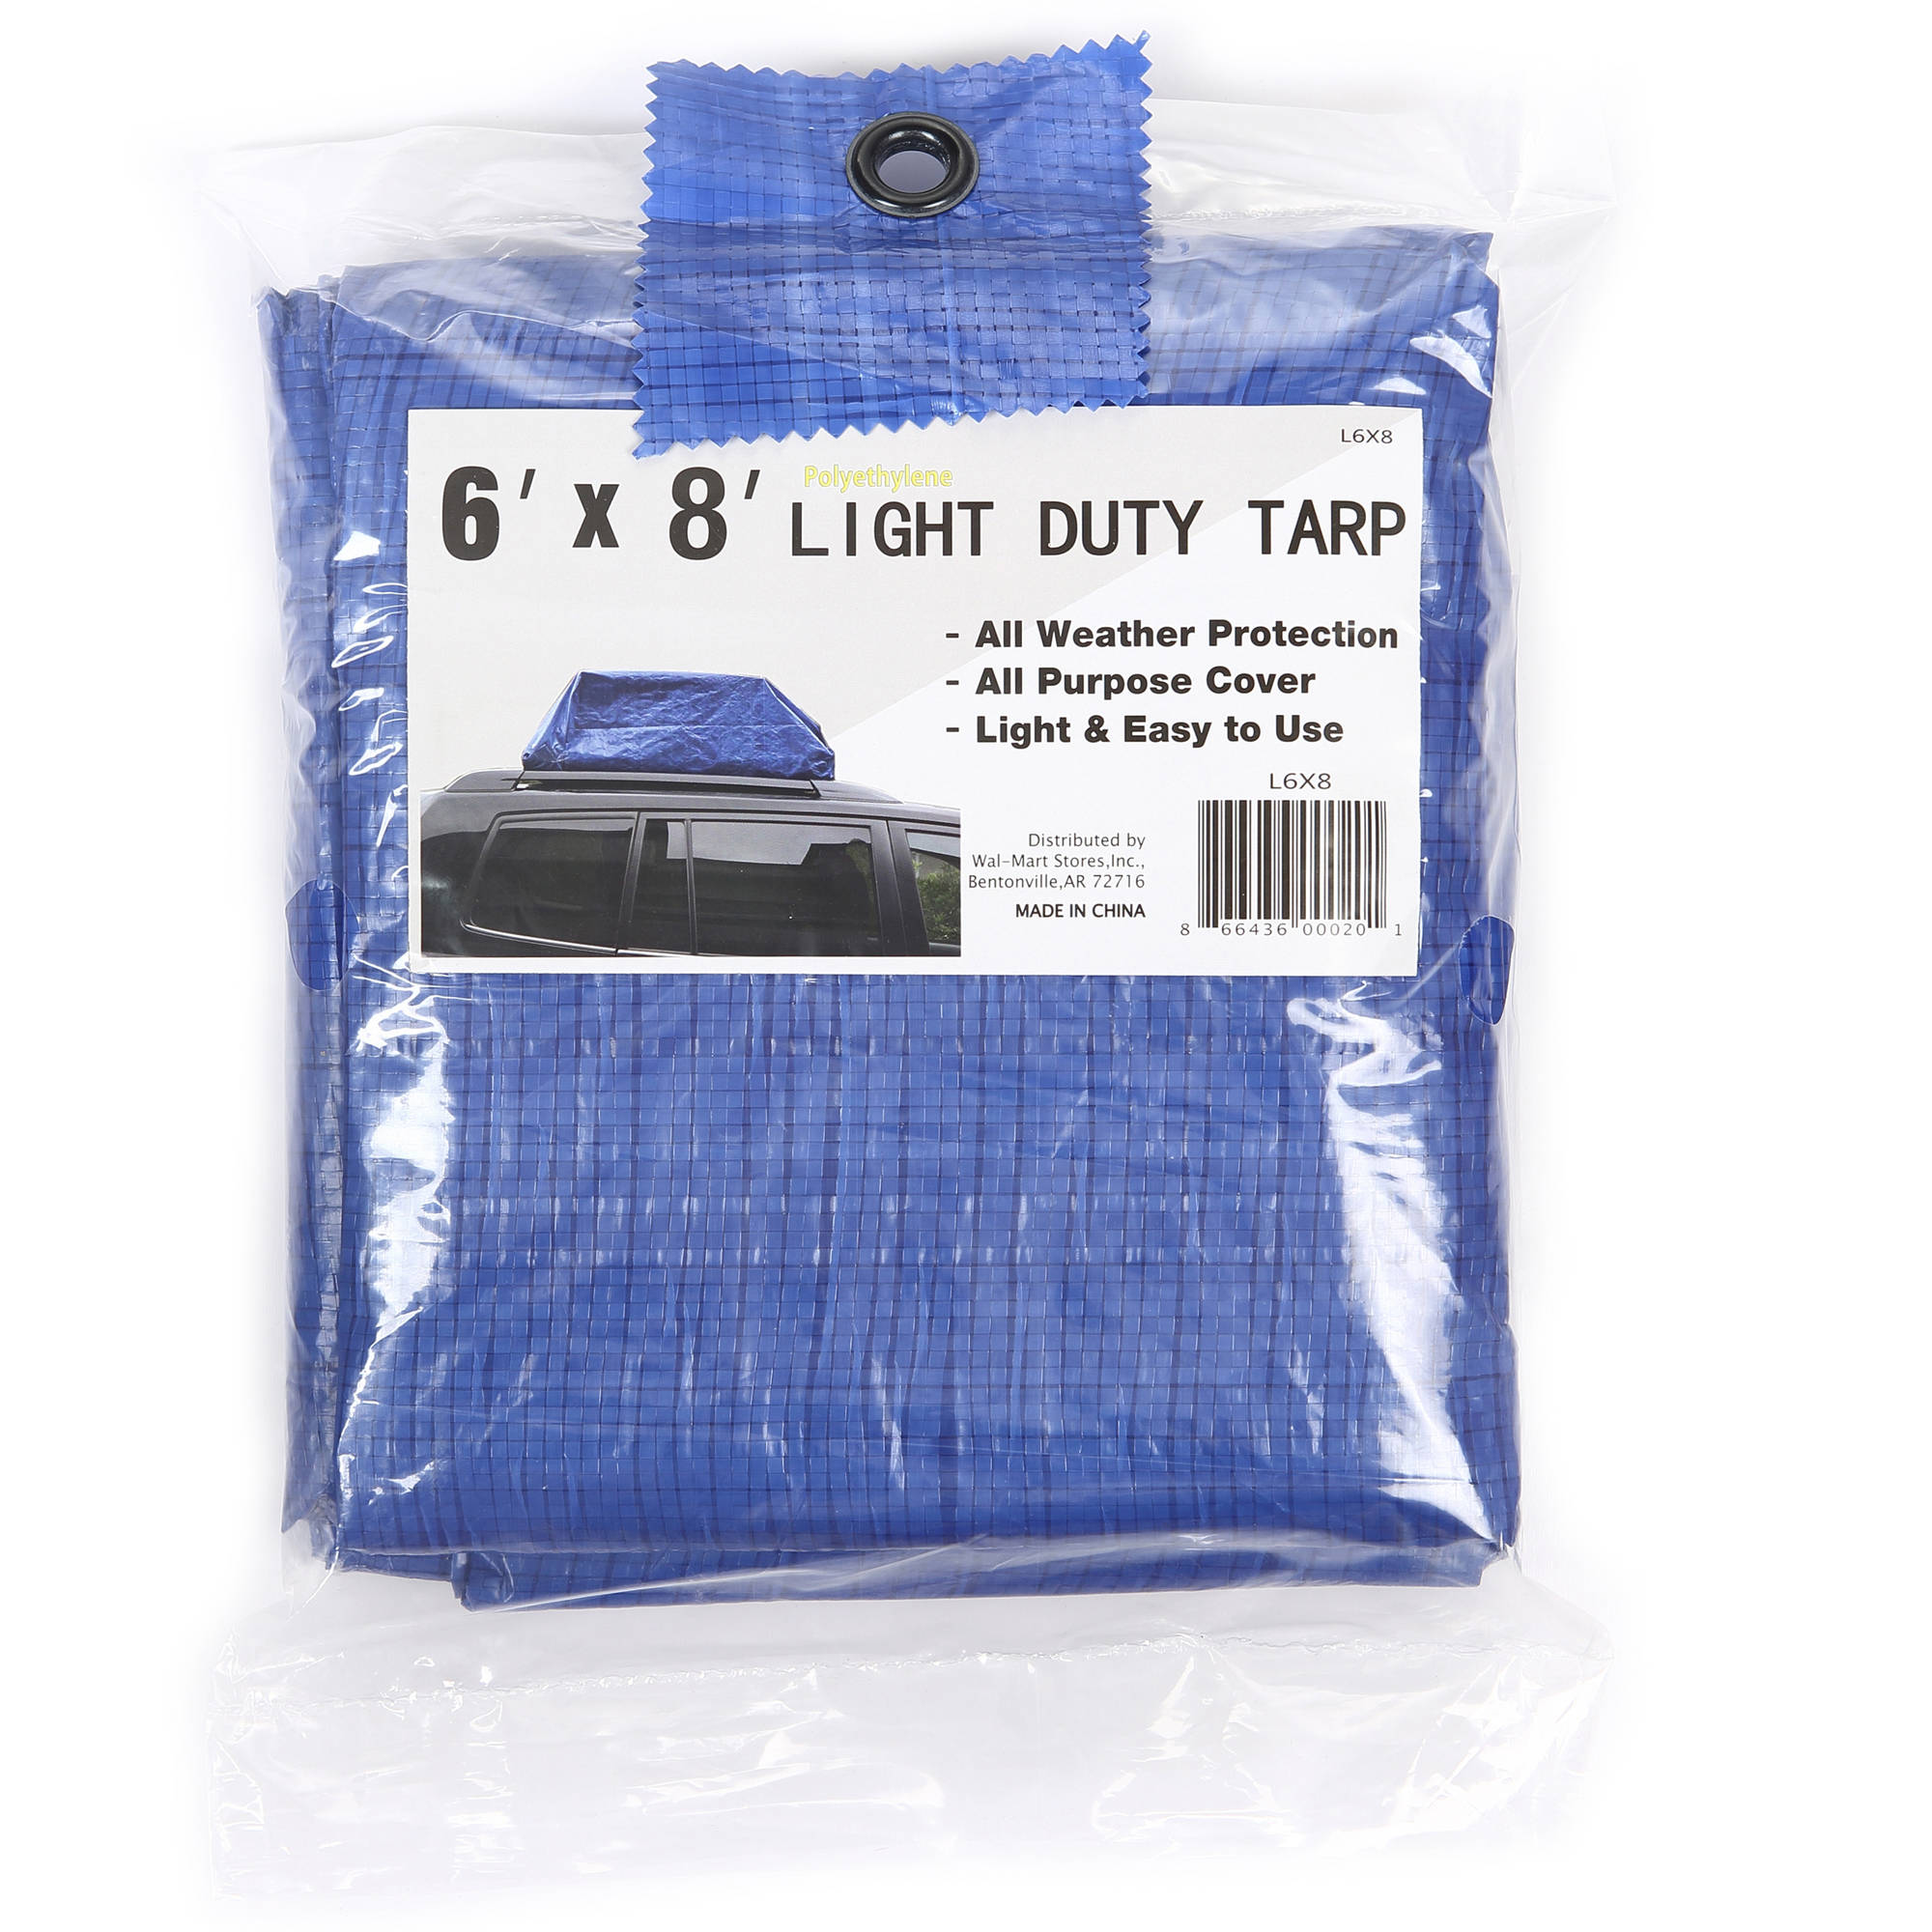 Hyper Tough 6' x 8' Light Duty Tarp All Weather Protection All Purpose Cover